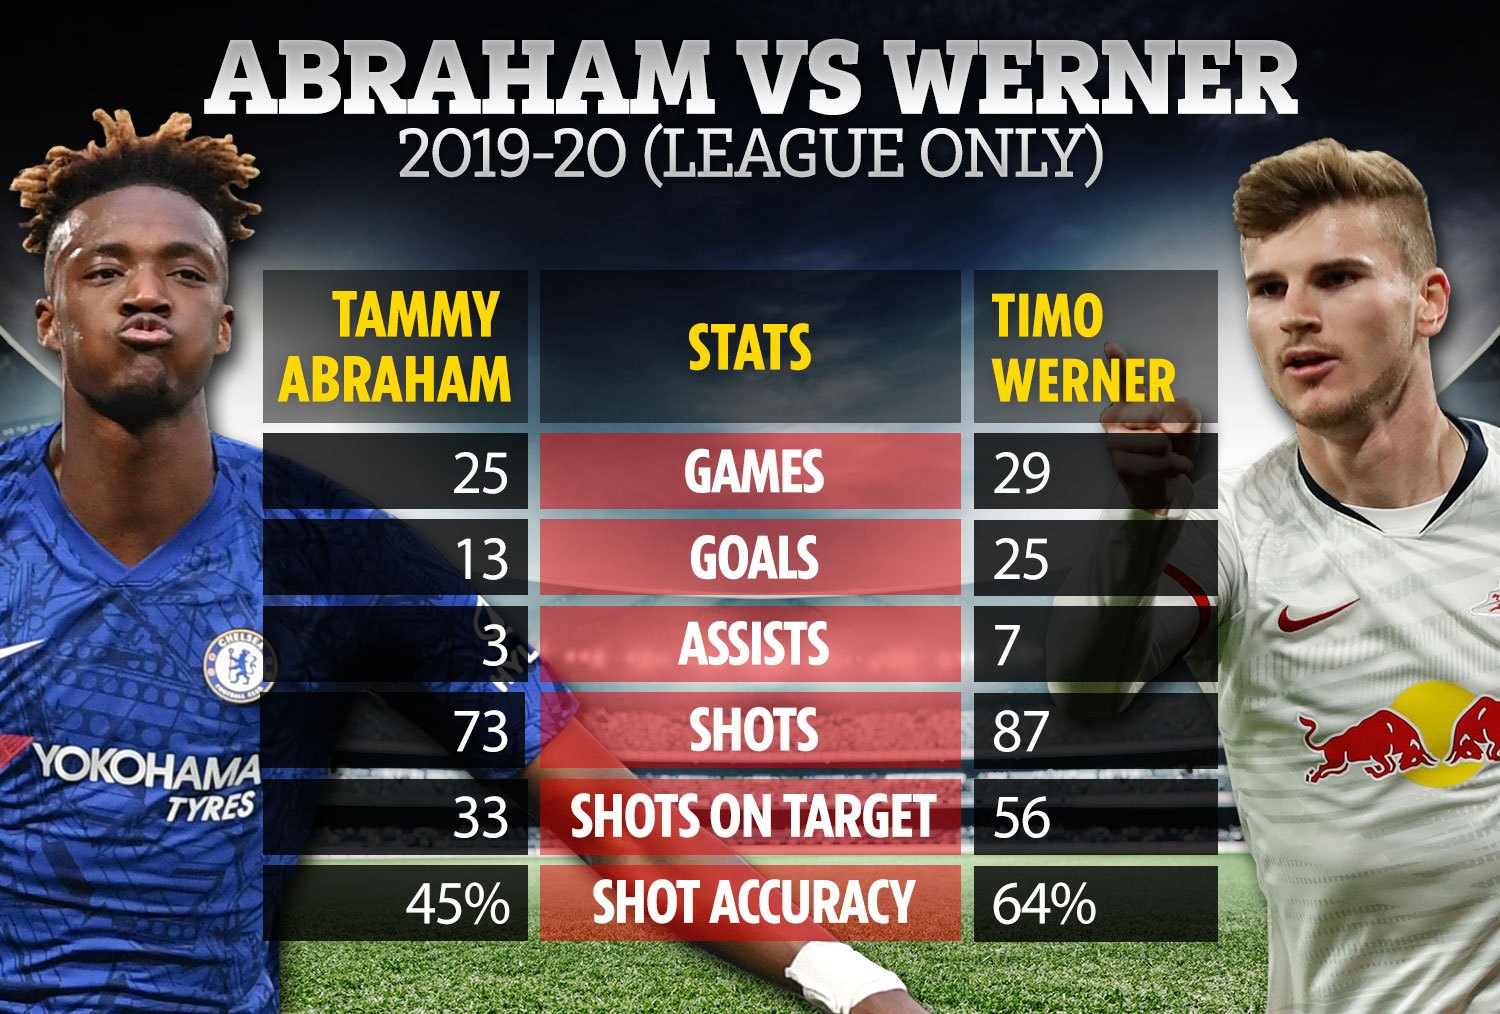 Tammy Abraham: Werner plays like Henry – Sporting Life